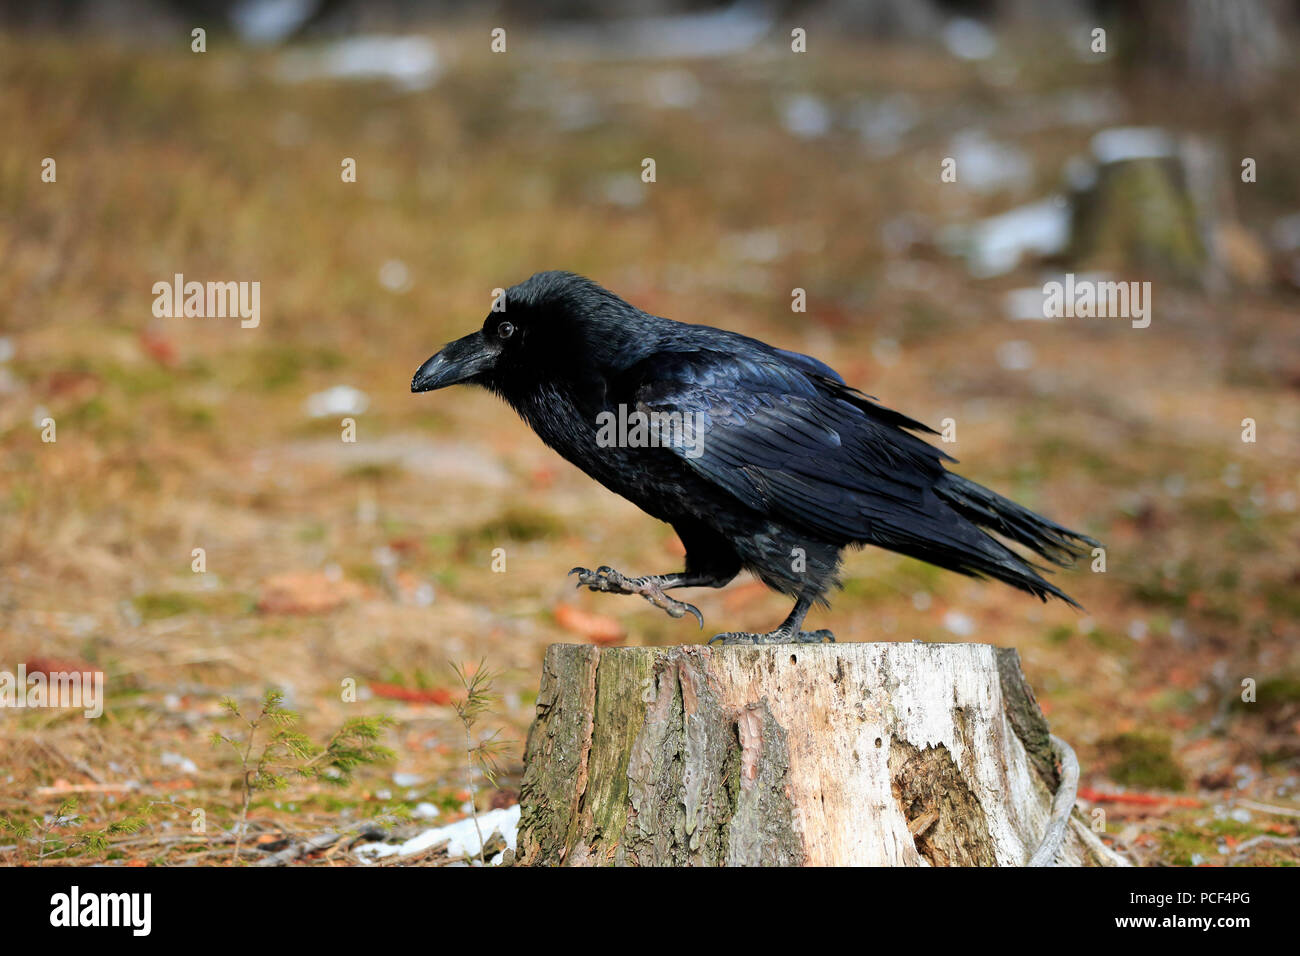 Common Raven, adult, Zdarske Vrchy, Bohemian-Moravian Highlands, Czech Republic, (Corvus corax) - Stock Image